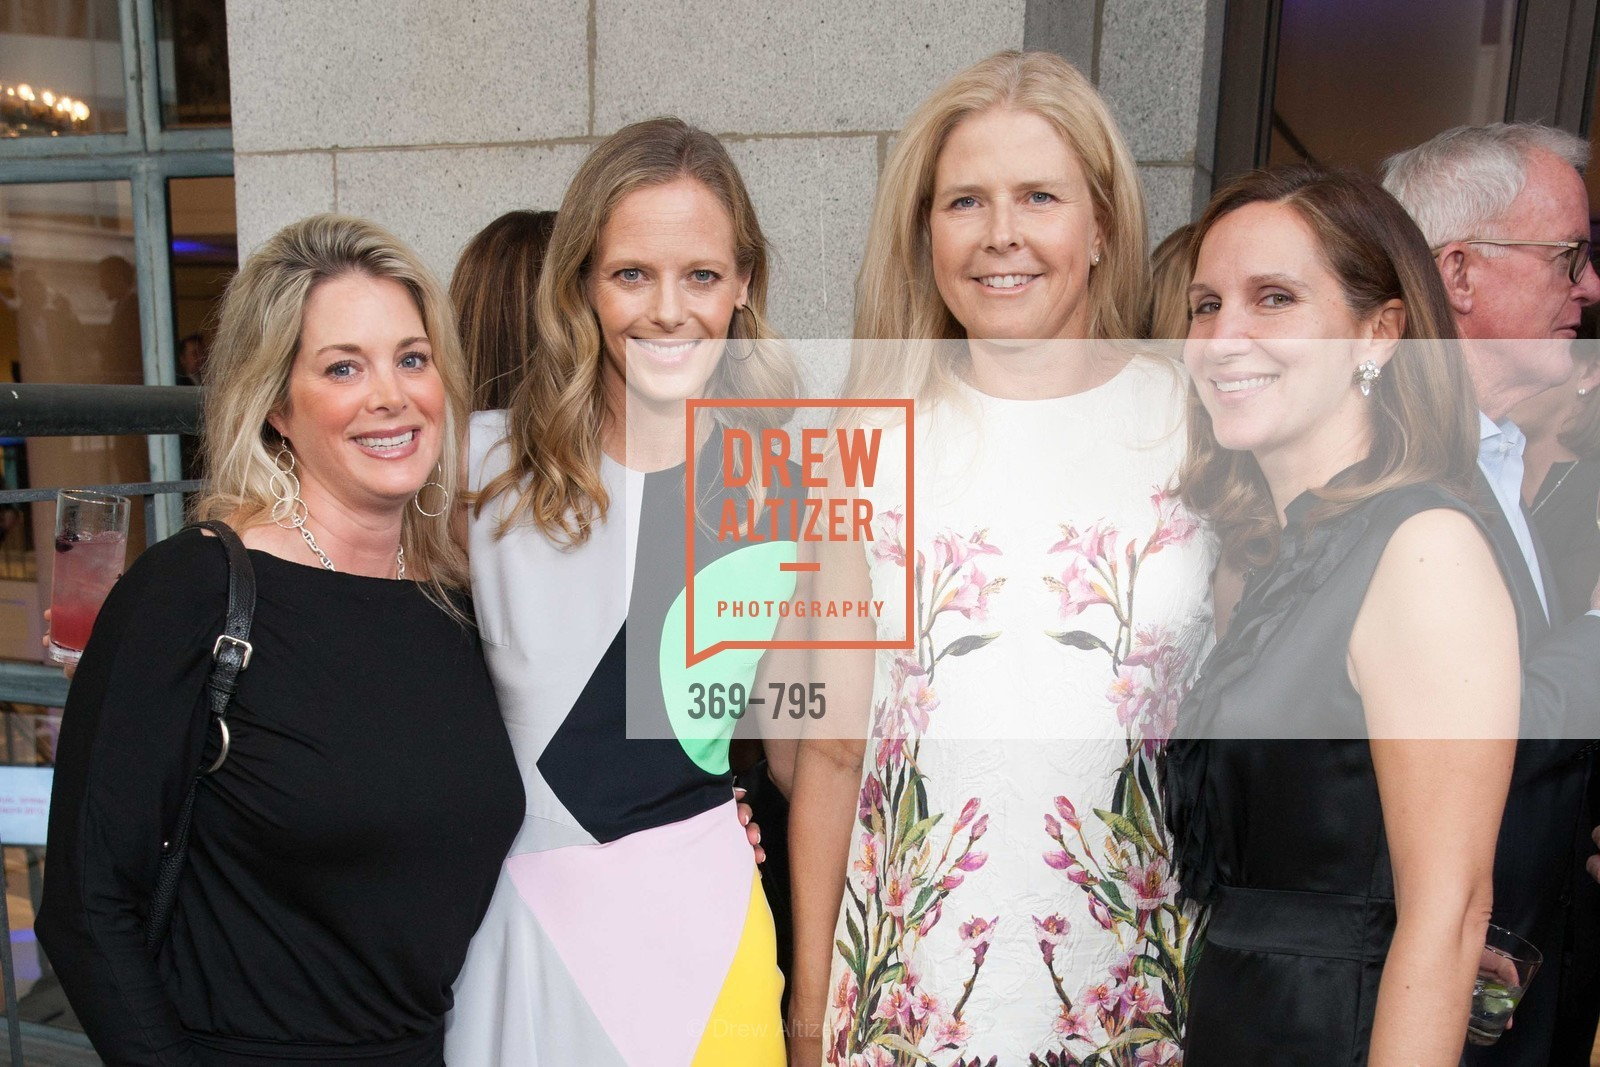 Amy Defoor, Katie Traina, Virginia Tusher, Jessica Kaludis, COMPASS FAMILY SERVICES Annual Spring Benefit:  Every Family Needs A Home, US, April 22nd, 2015,Drew Altizer, Drew Altizer Photography, full-service agency, private events, San Francisco photographer, photographer california